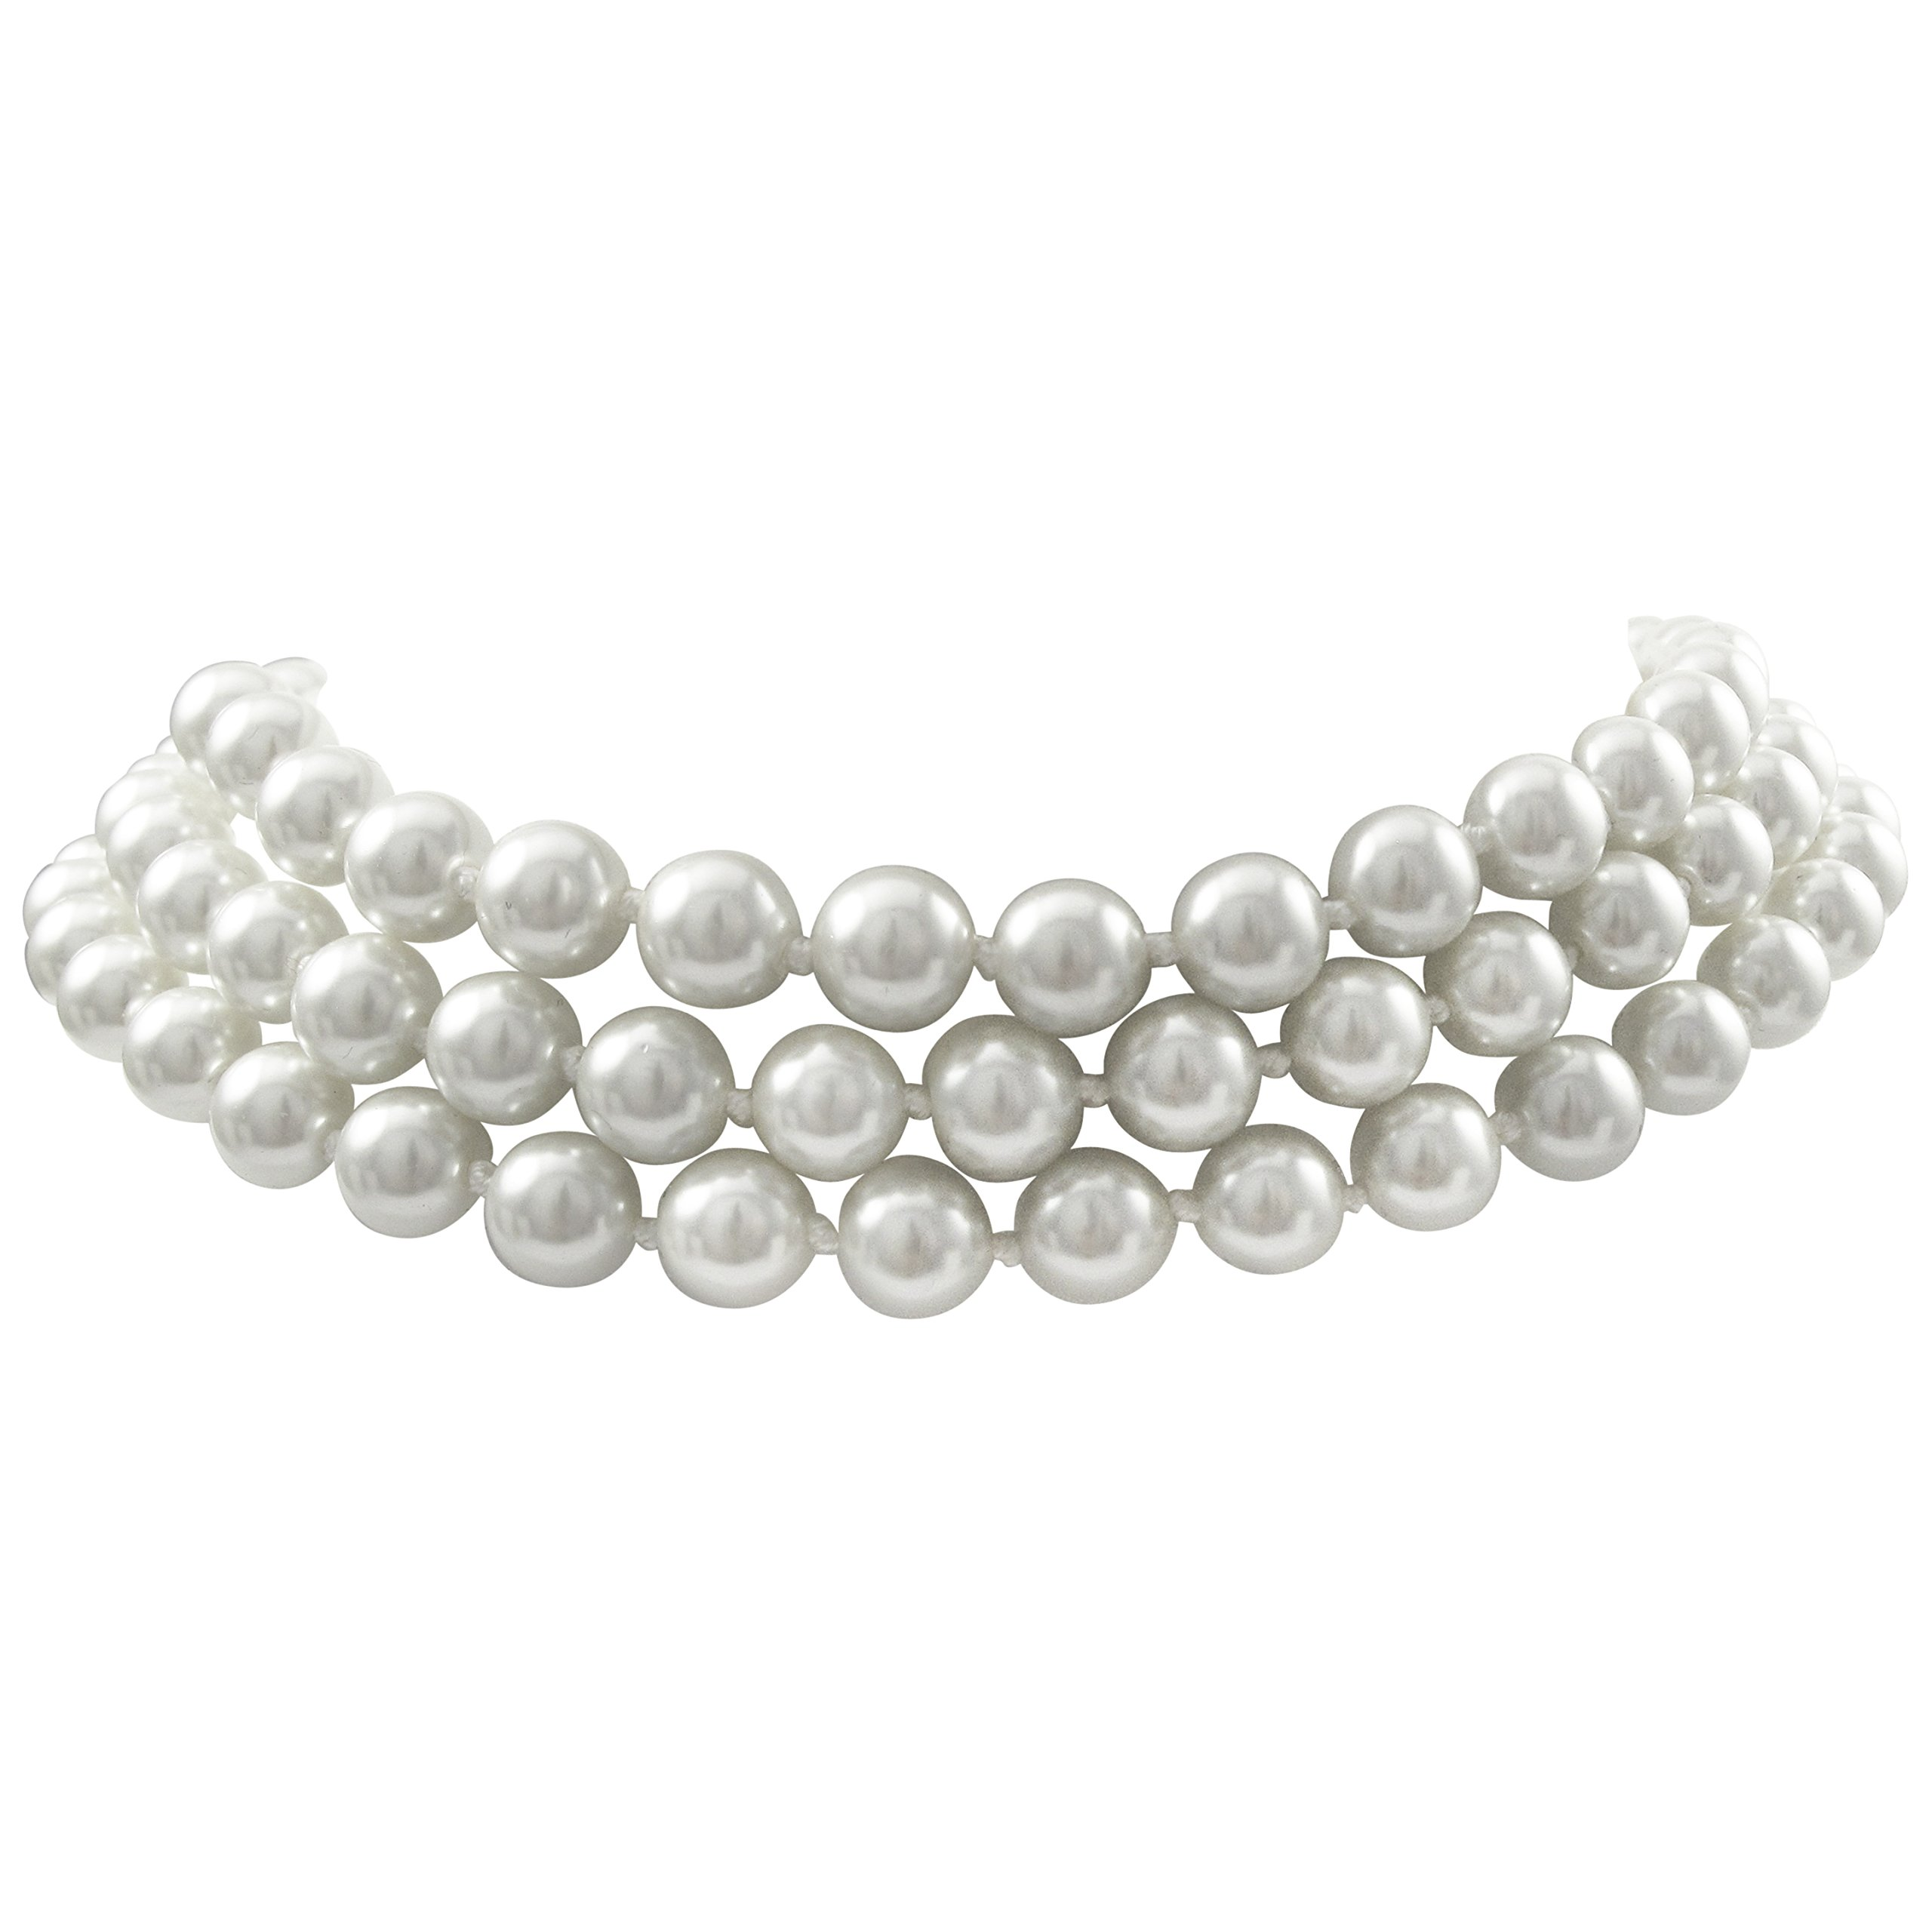 Isaac Kieran Faux Pearl Choker Necklace, Rhodium Finish, 3-Strands - 8-mm Pearls, 14 Inch plus 3 Inch Extender (White) by Isaac Kieran